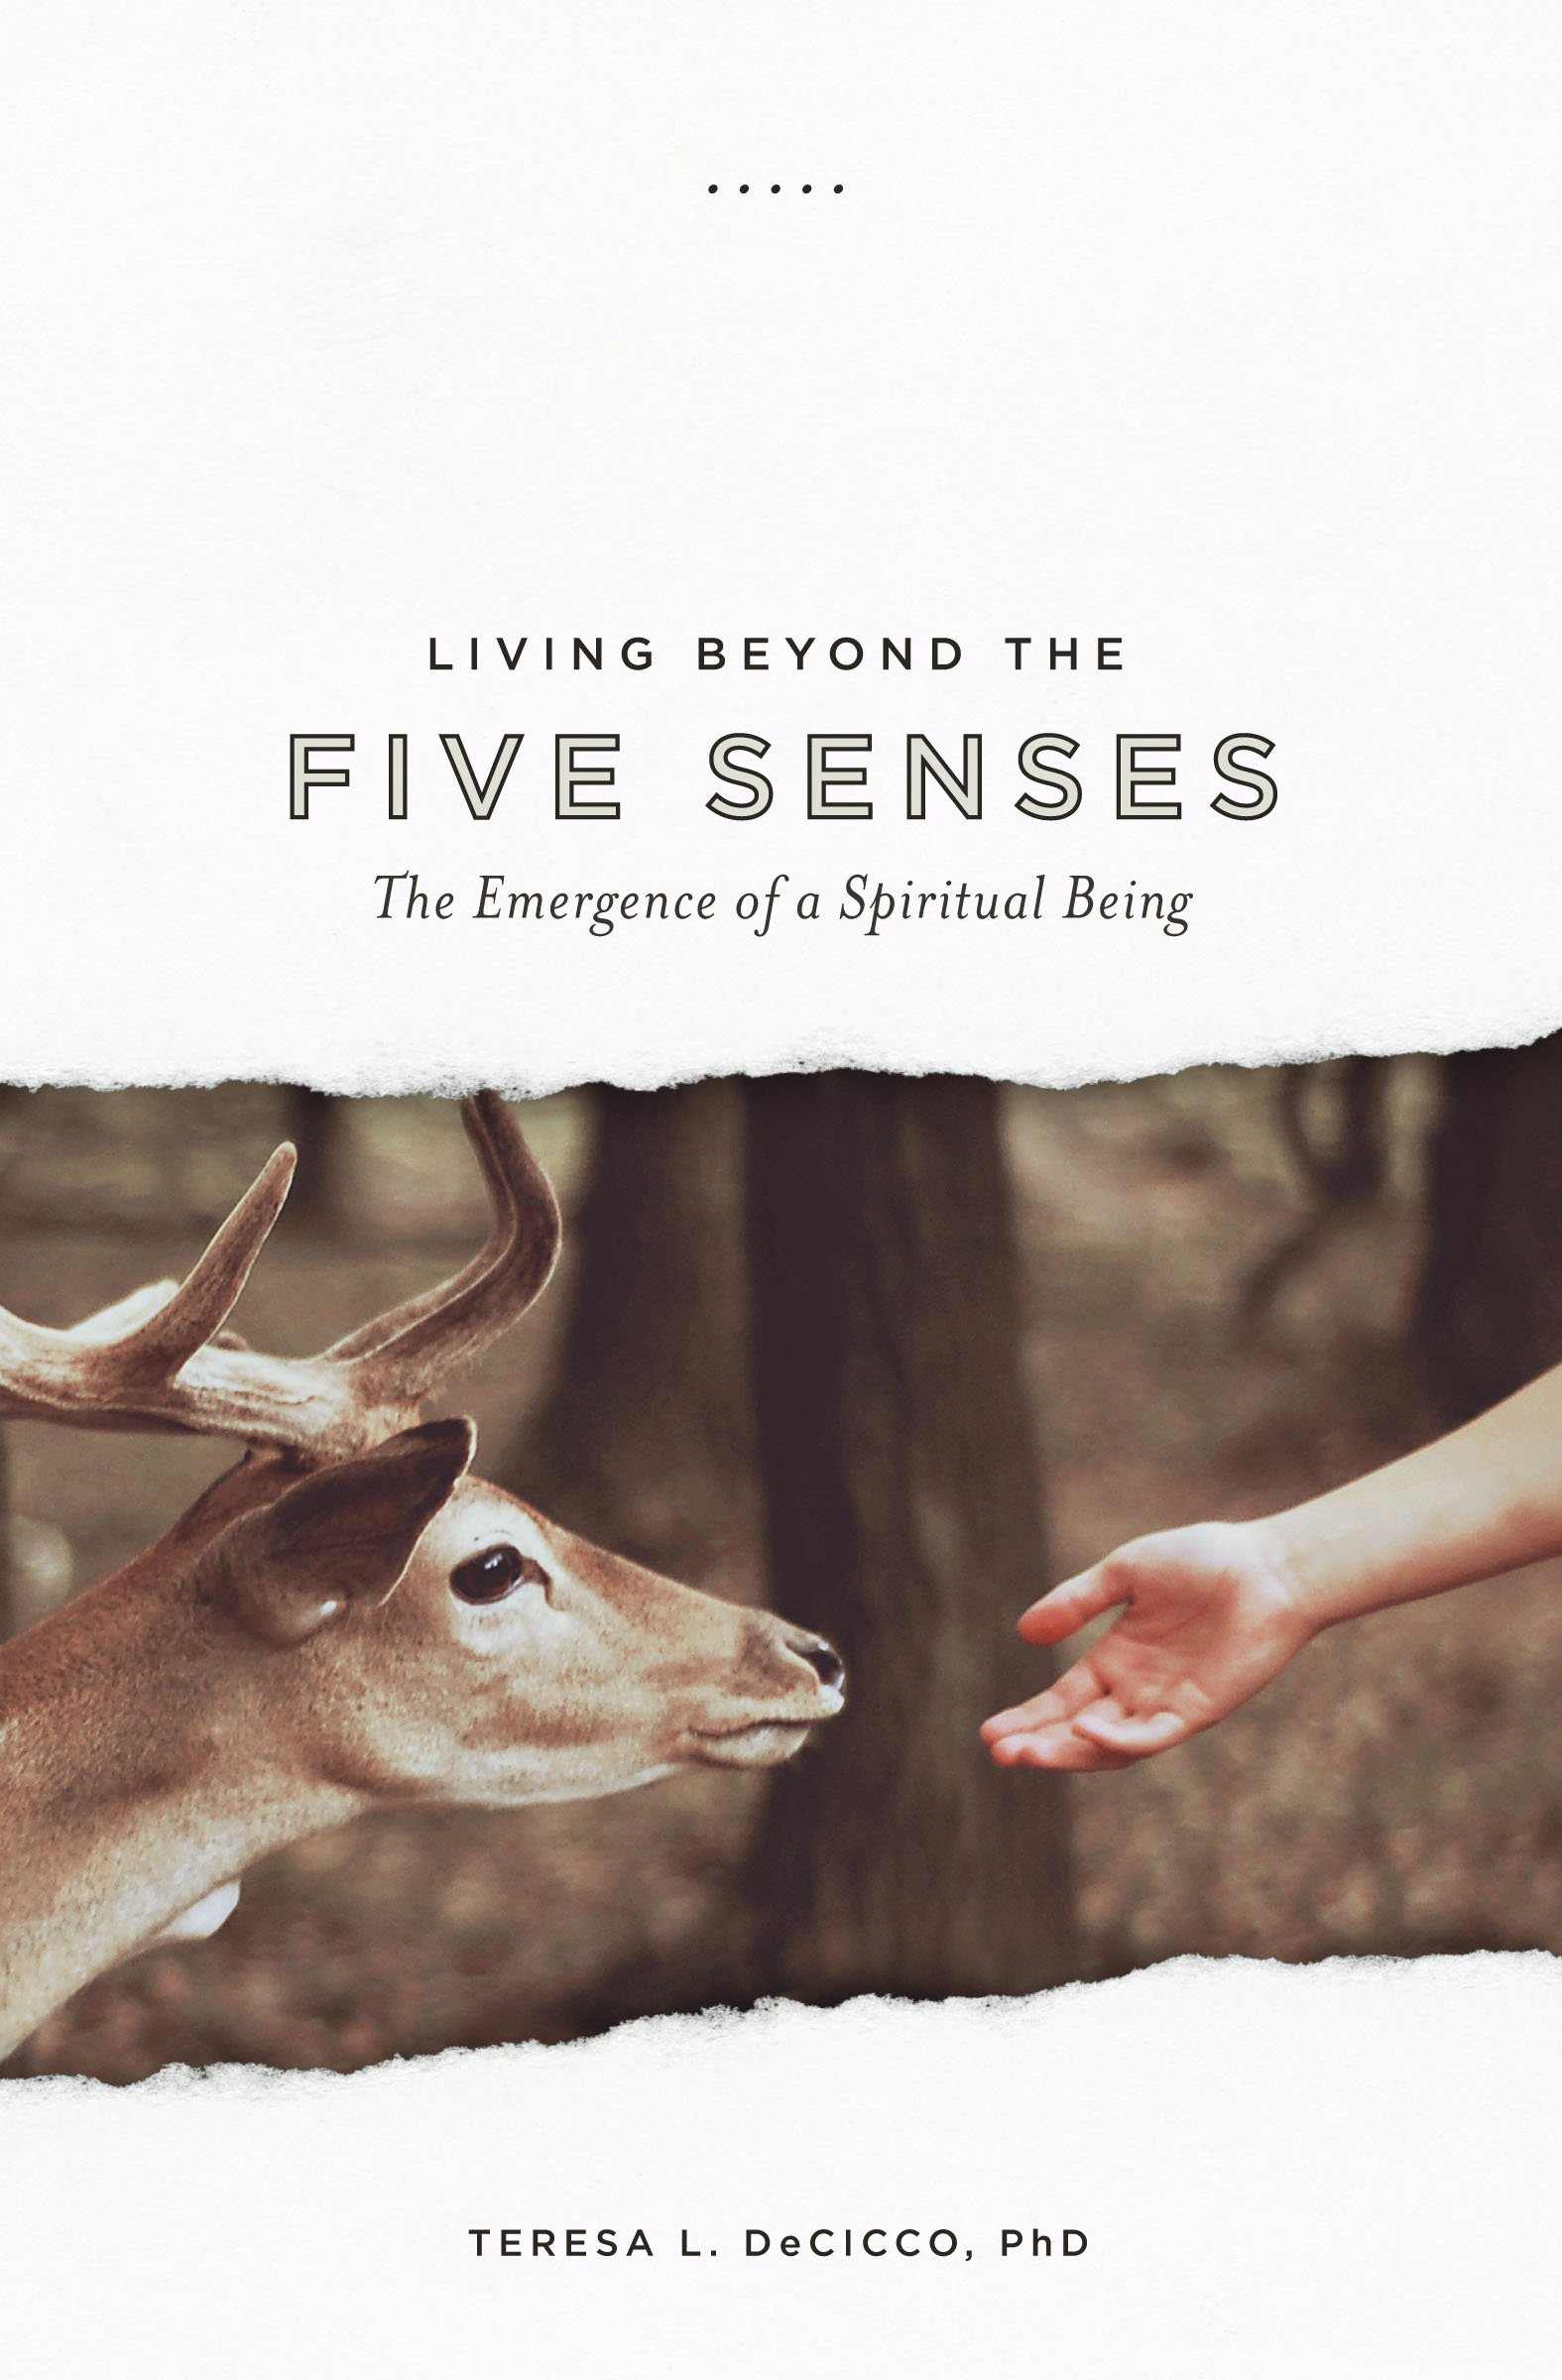 Living Beyond the Five Senses: The Emergence of a Spiritual Being pdf